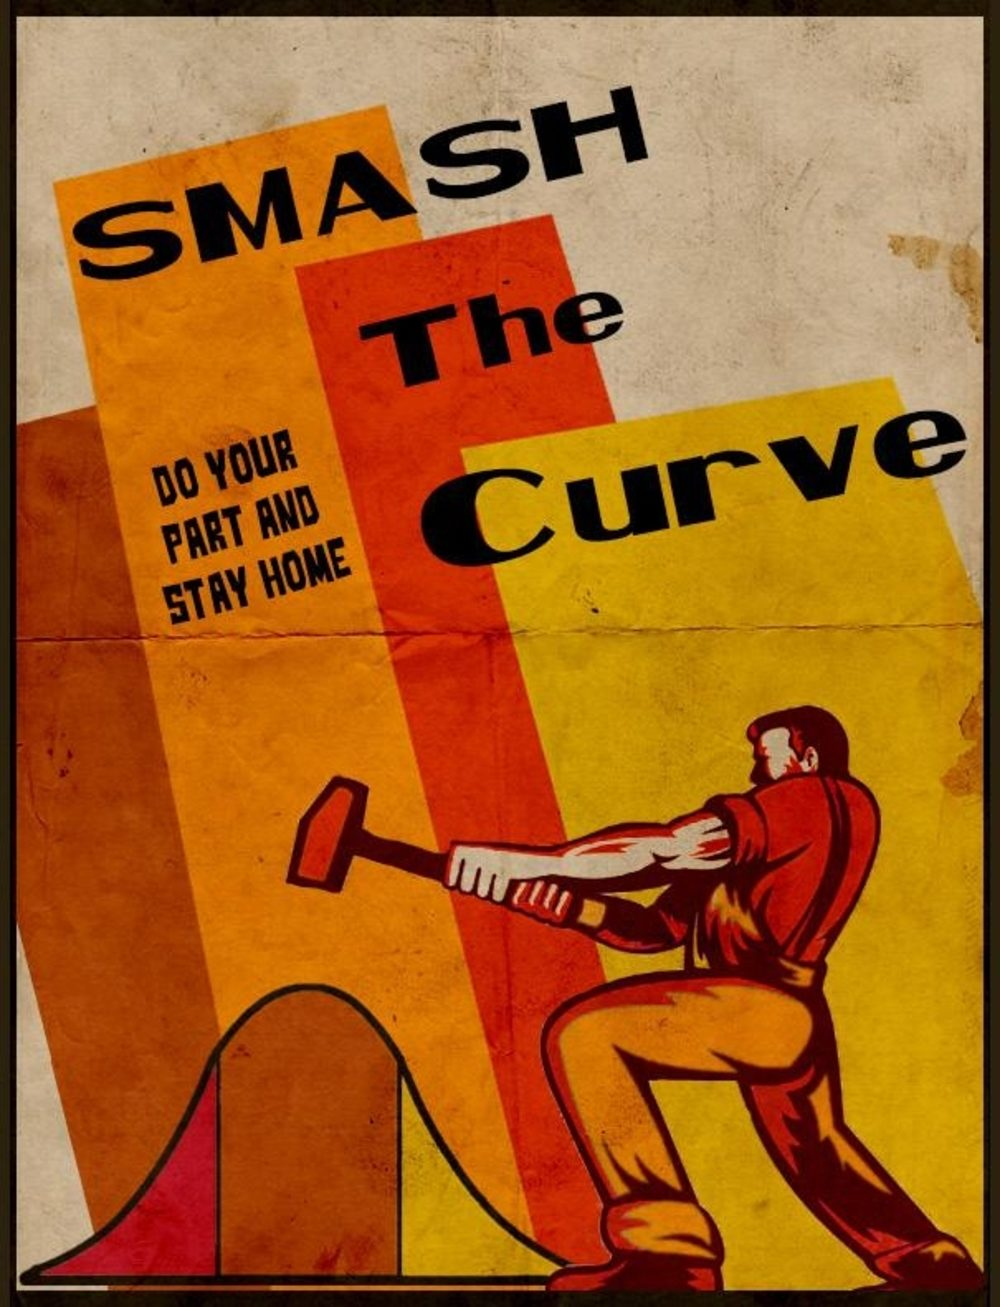 """Smash The Curve"" by u/Gleeemonex"